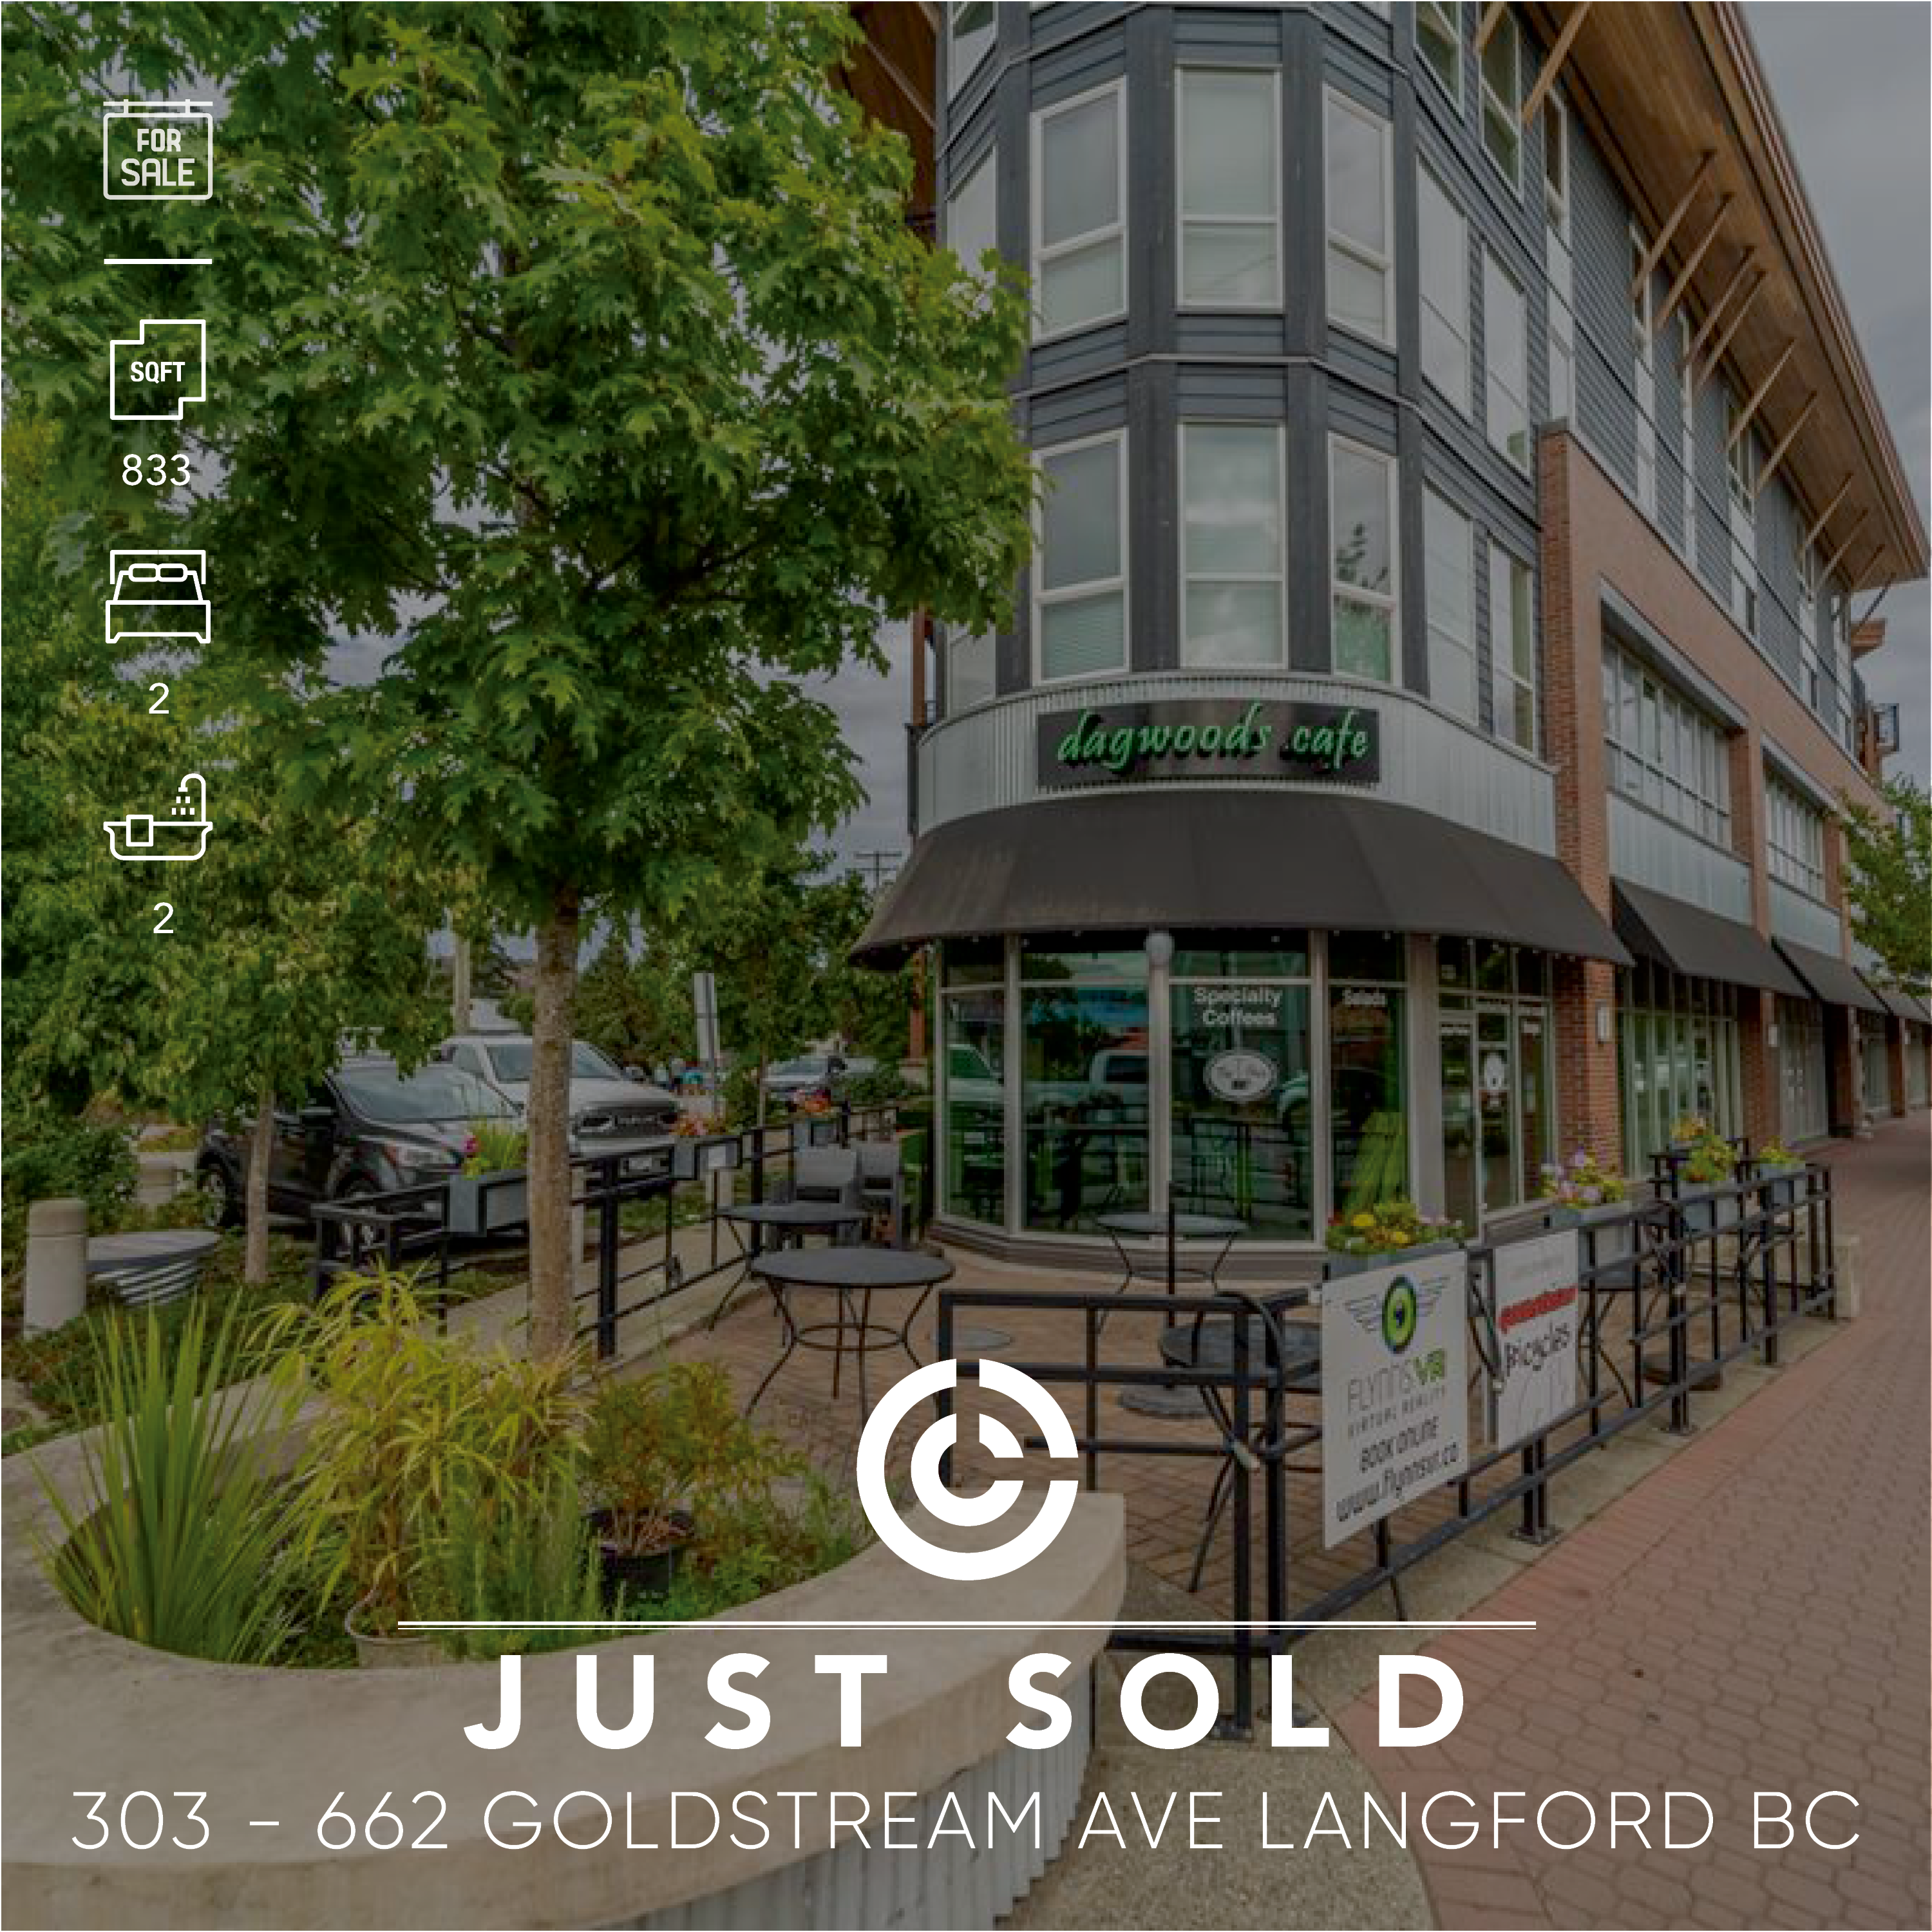 303 - 662 Goldstream Ave Langford BC.png